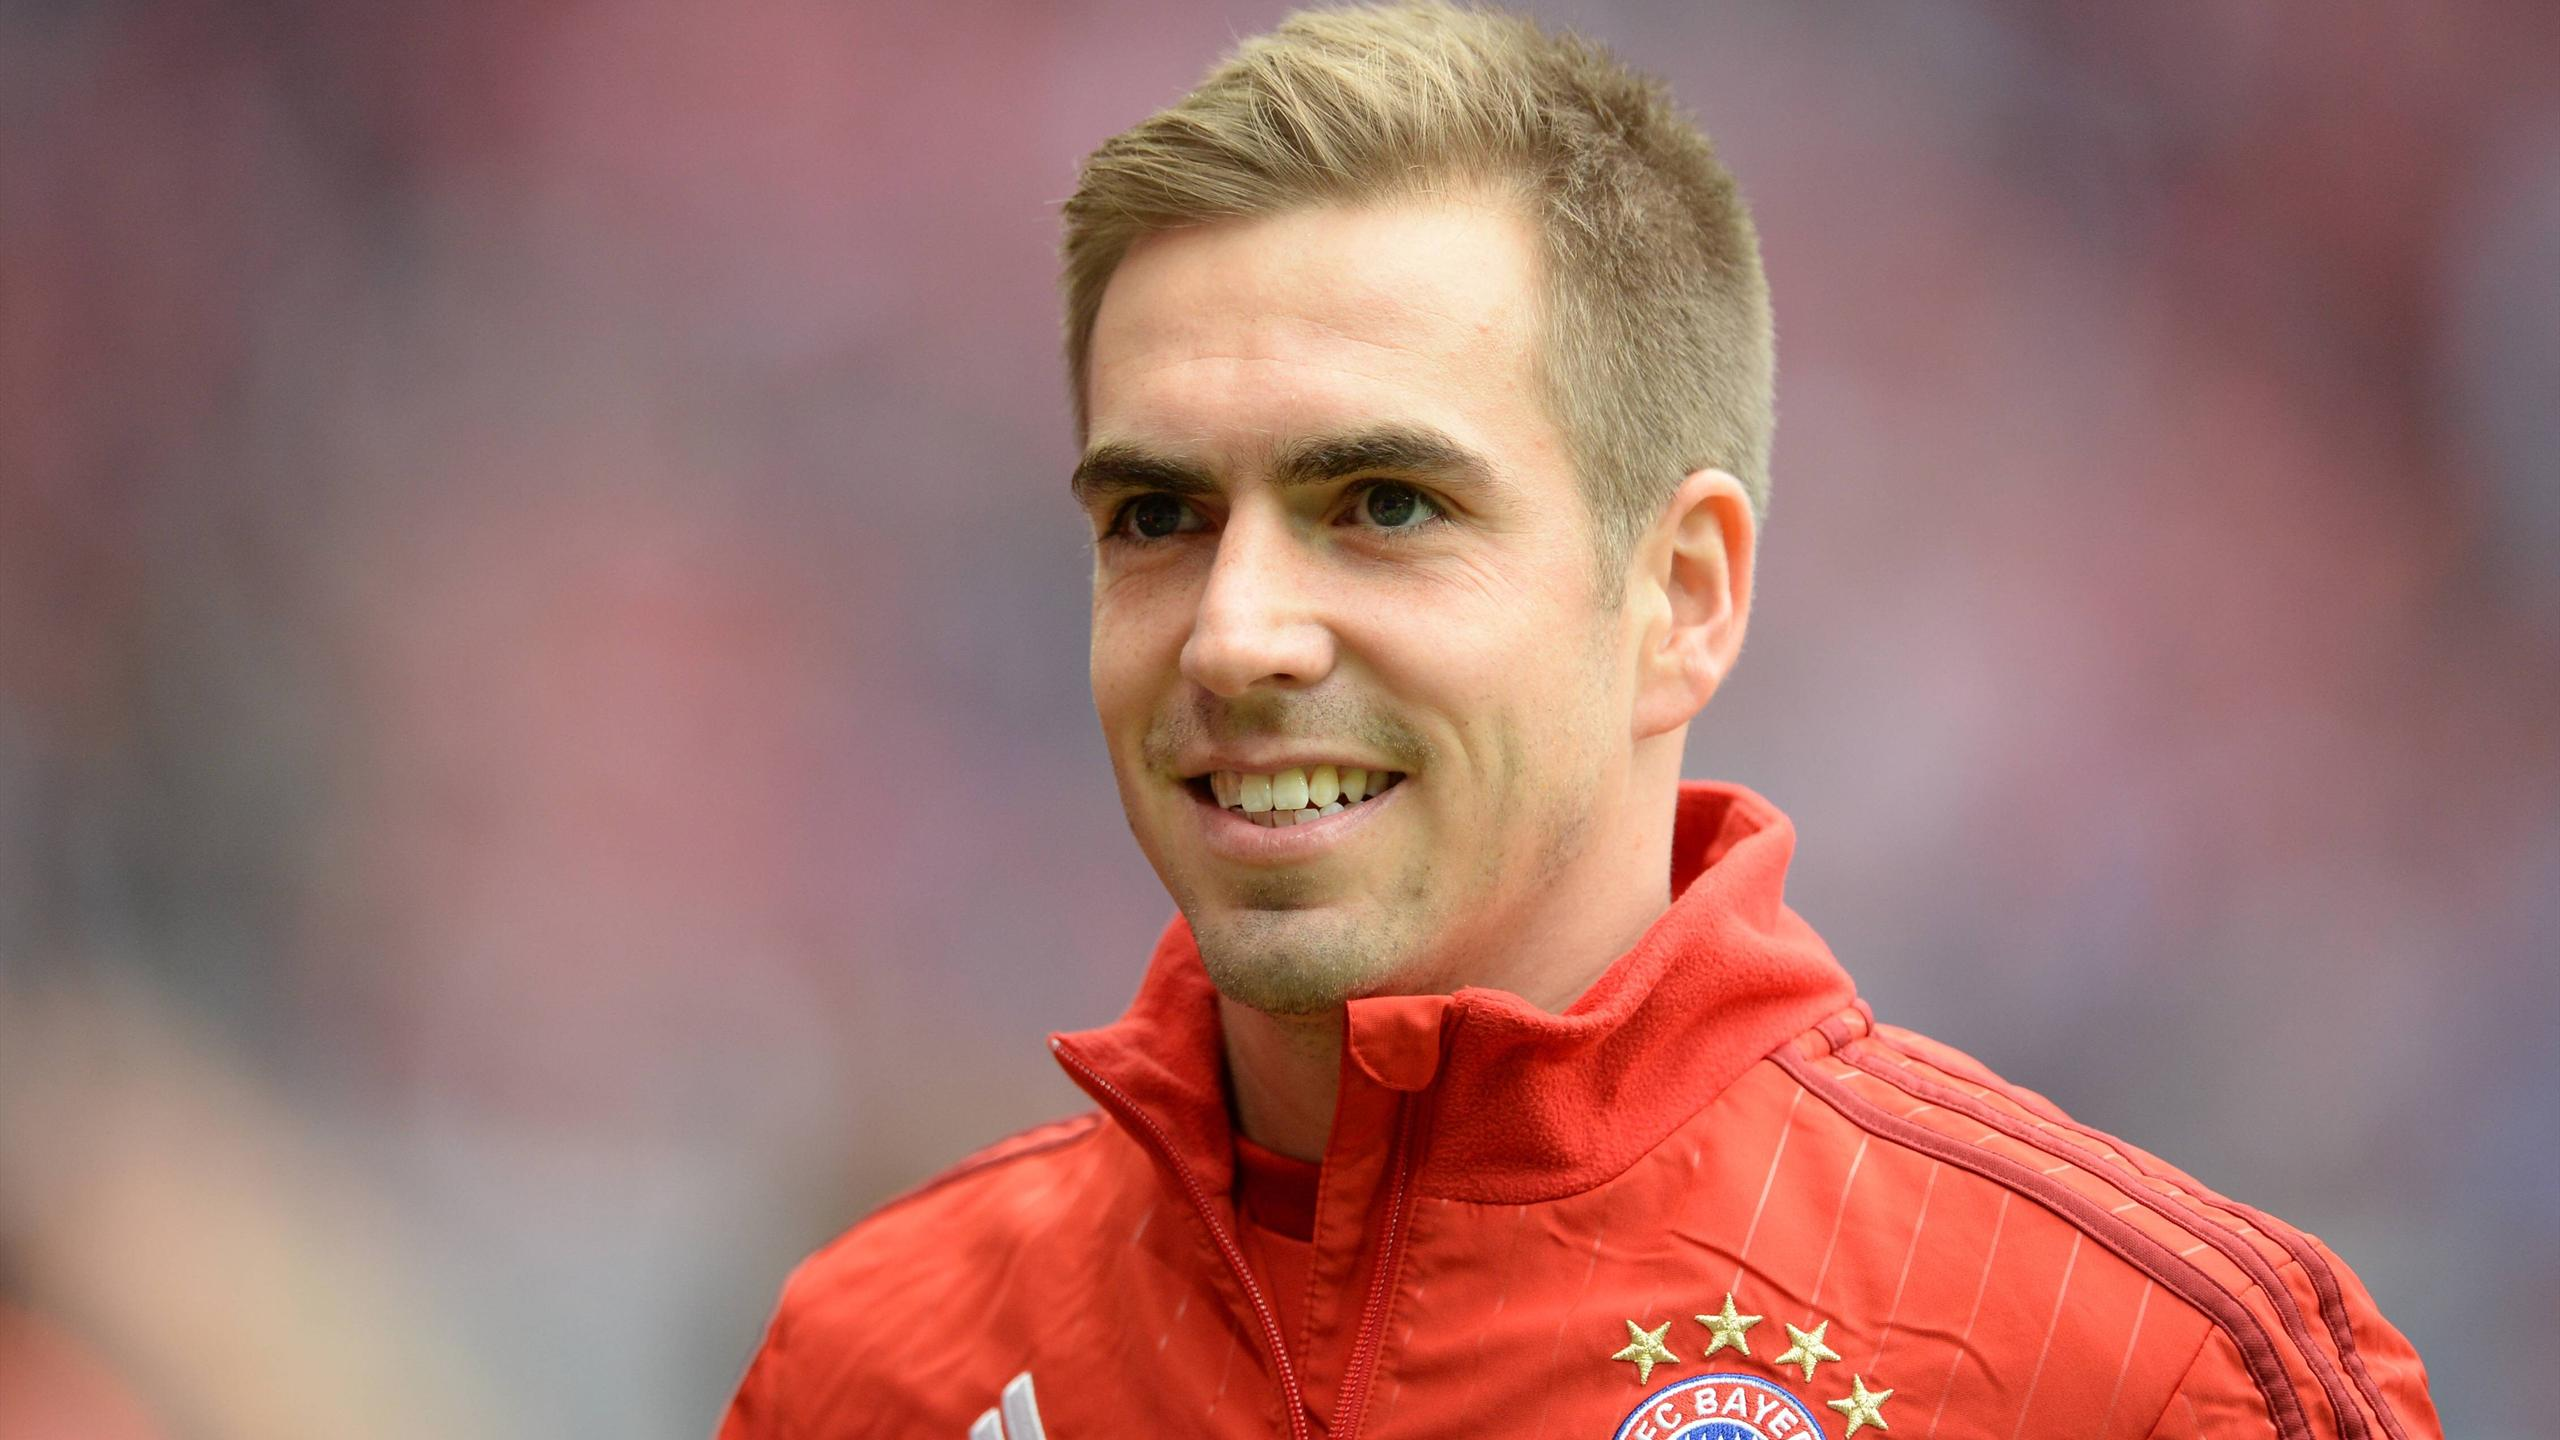 Philipp Lahm Birthday